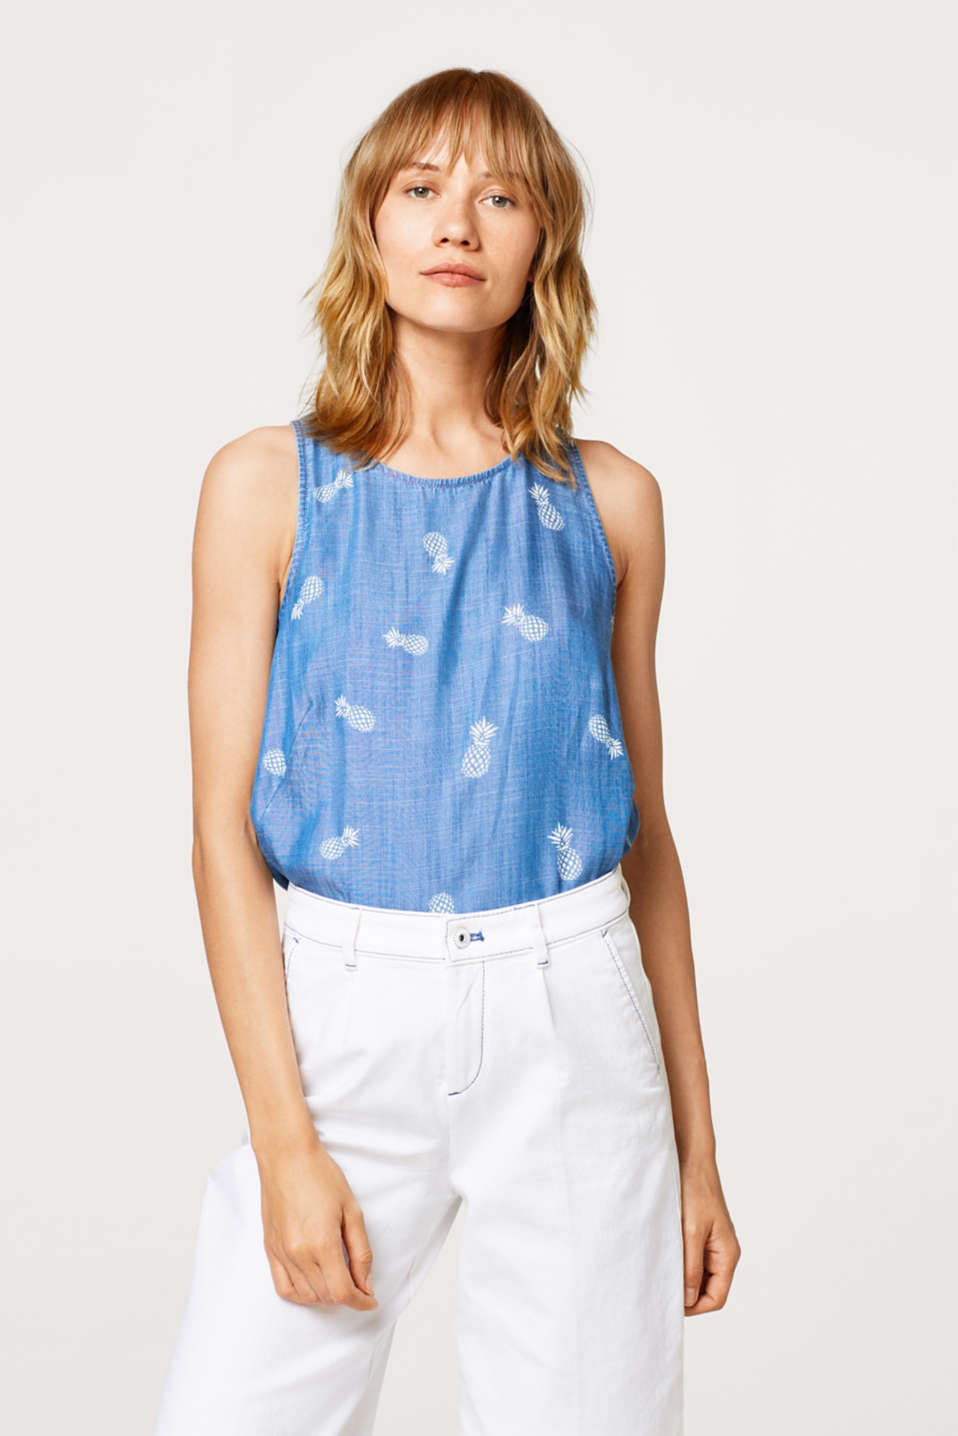 edc - Top in a lightweight denim look with a pineapple print